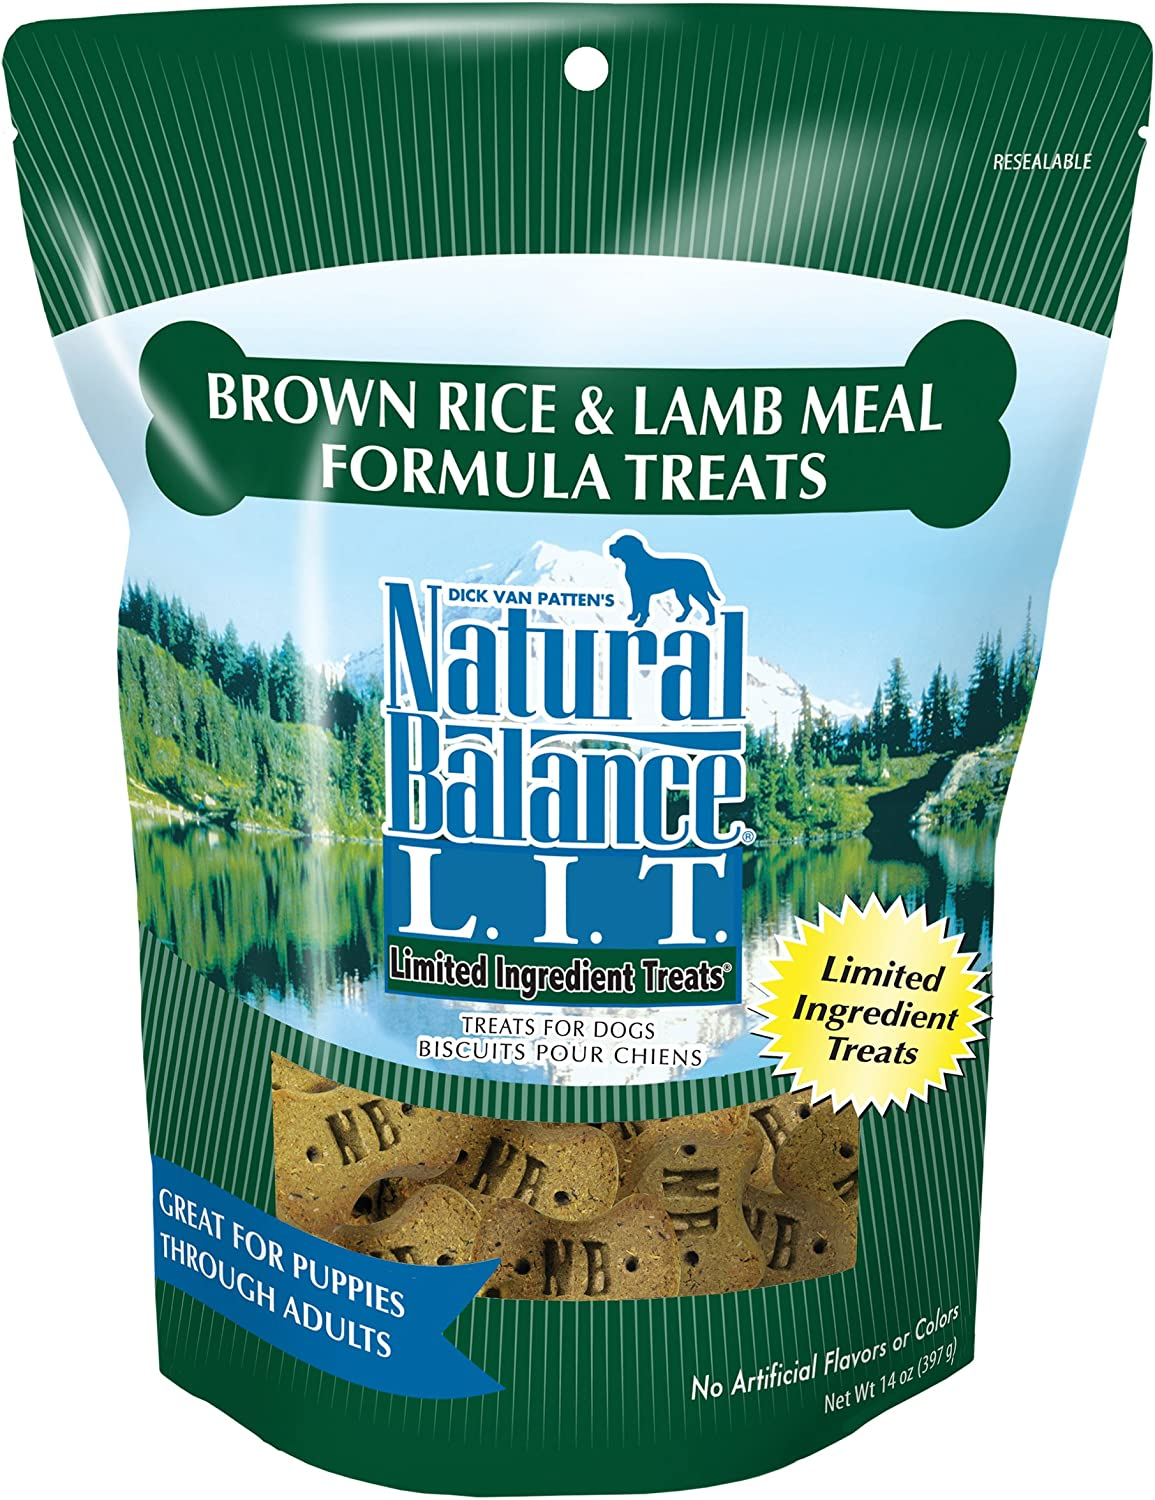 Natural Balance L.I.D. Limited Ingredient Diets Dog Treats